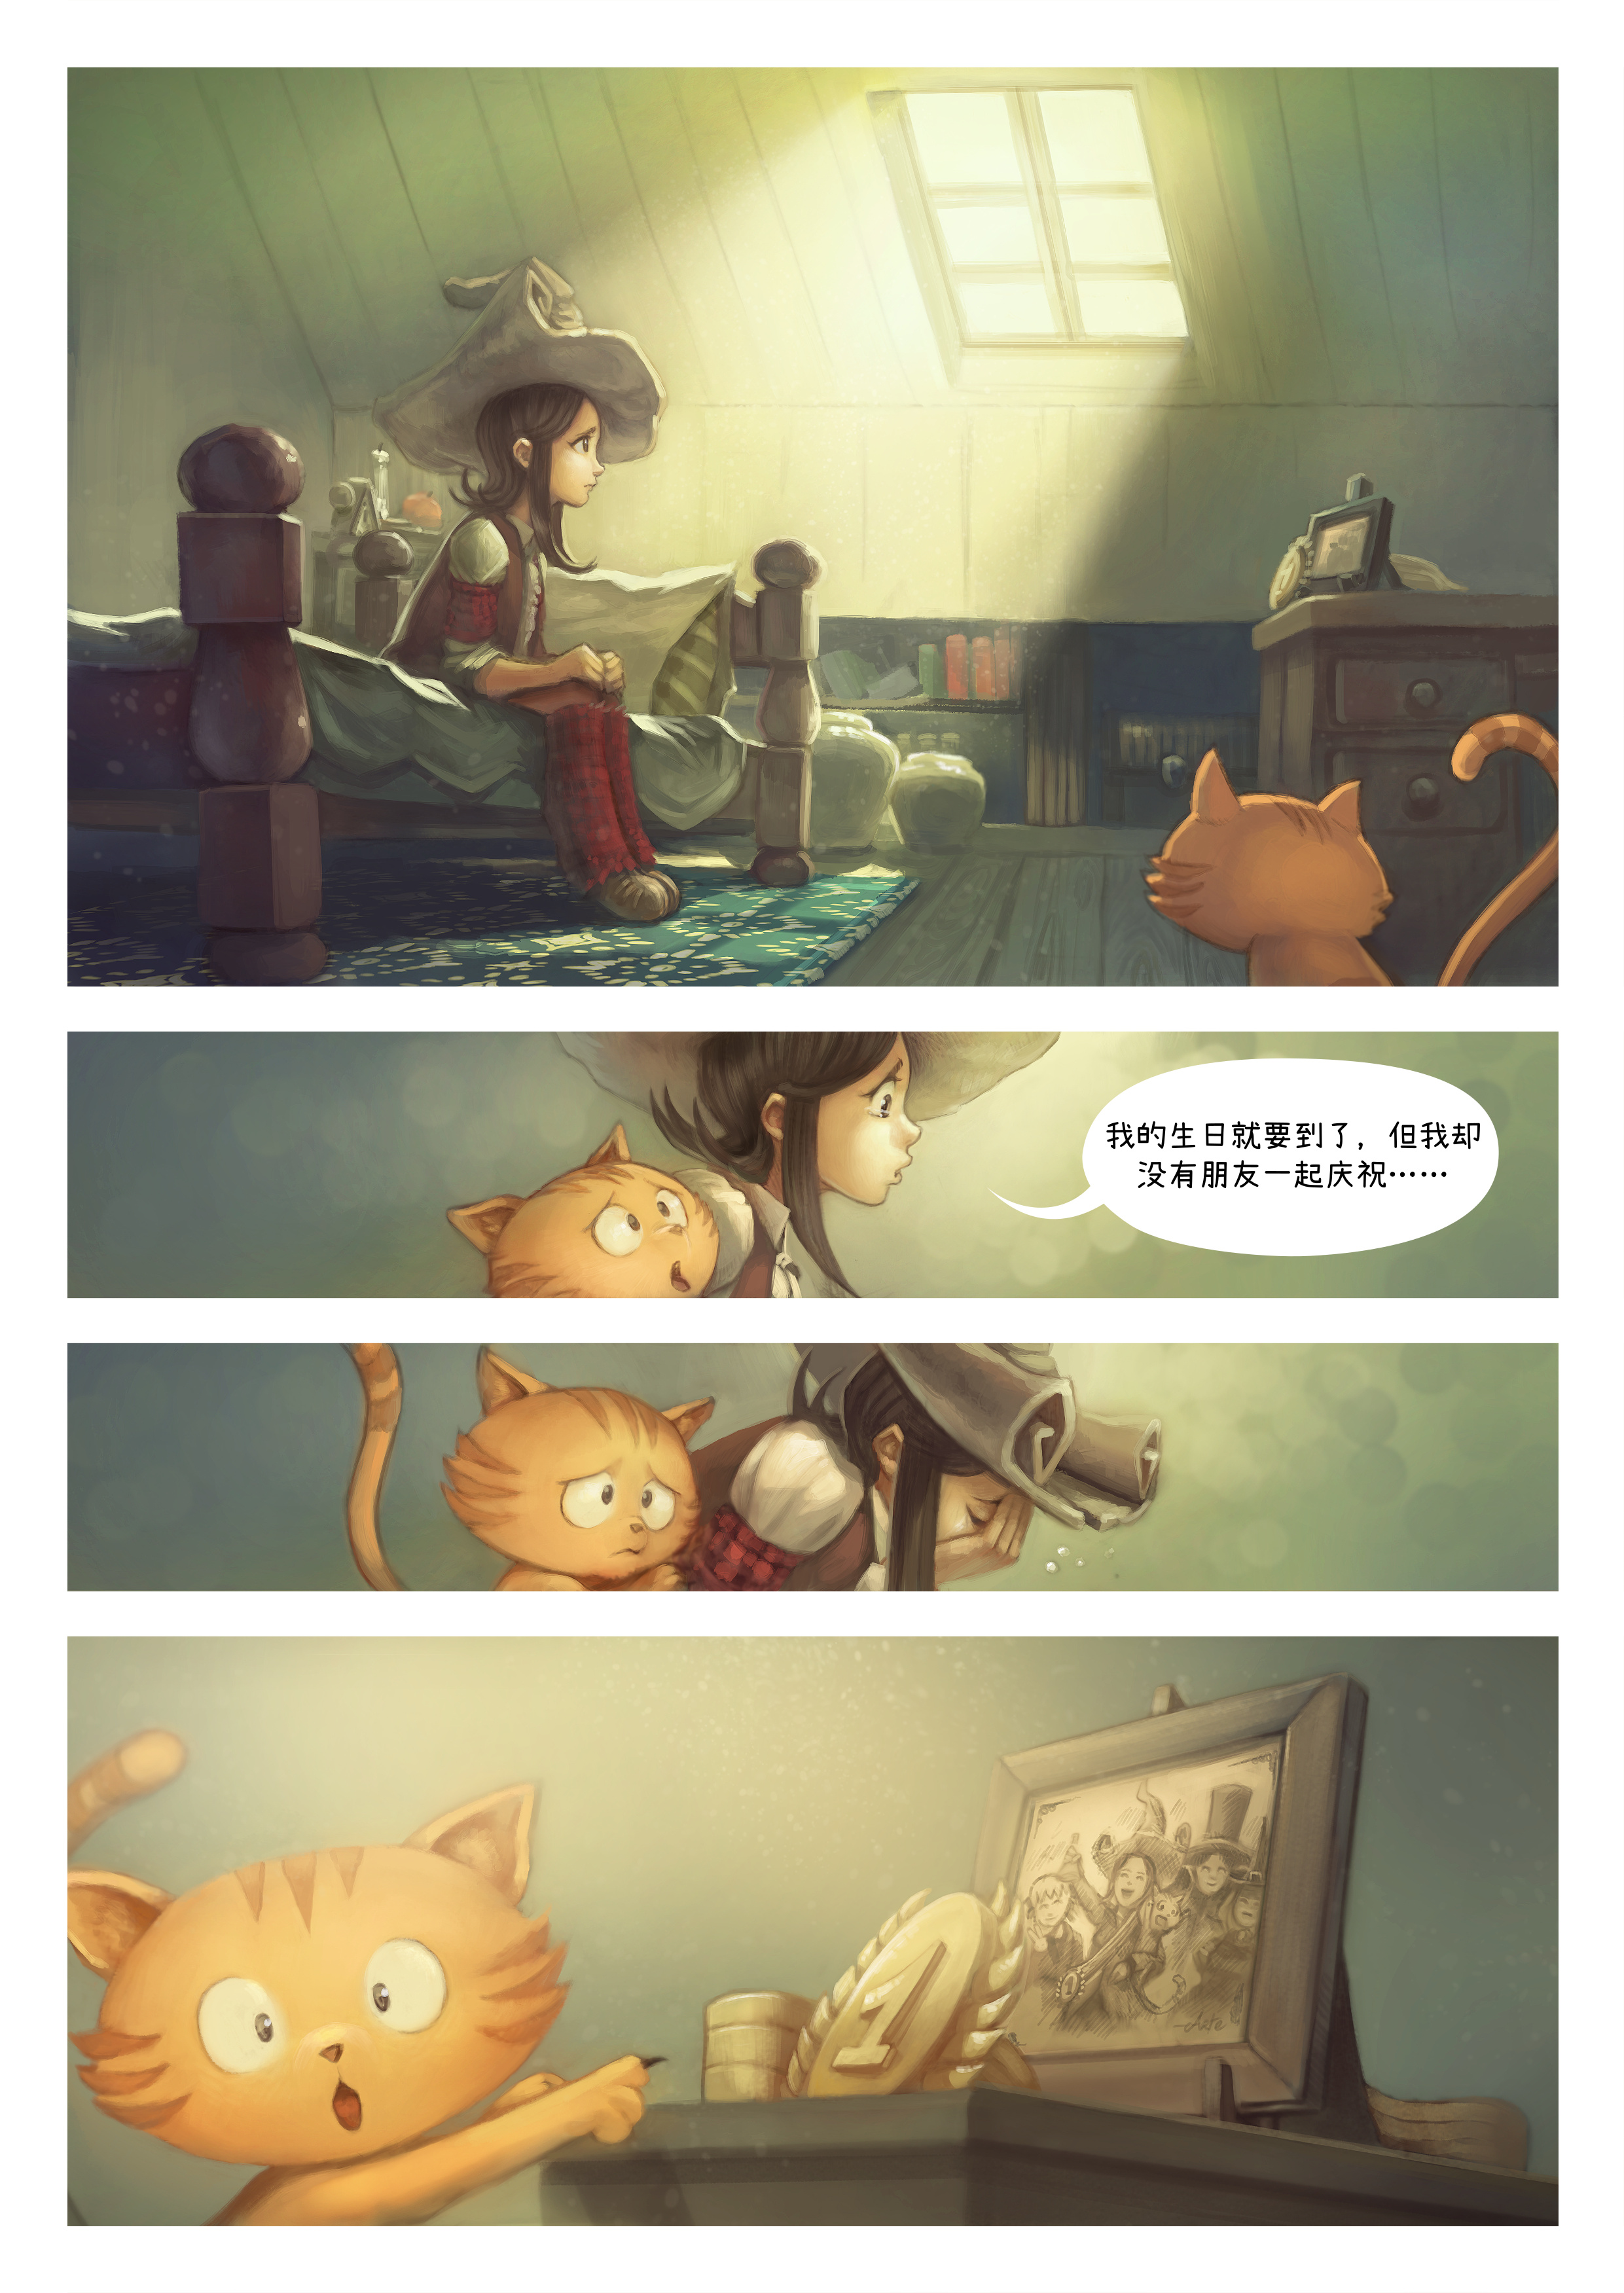 A webcomic page of Pepper&Carrot, 漫画全集 8 [cn], 页面 1